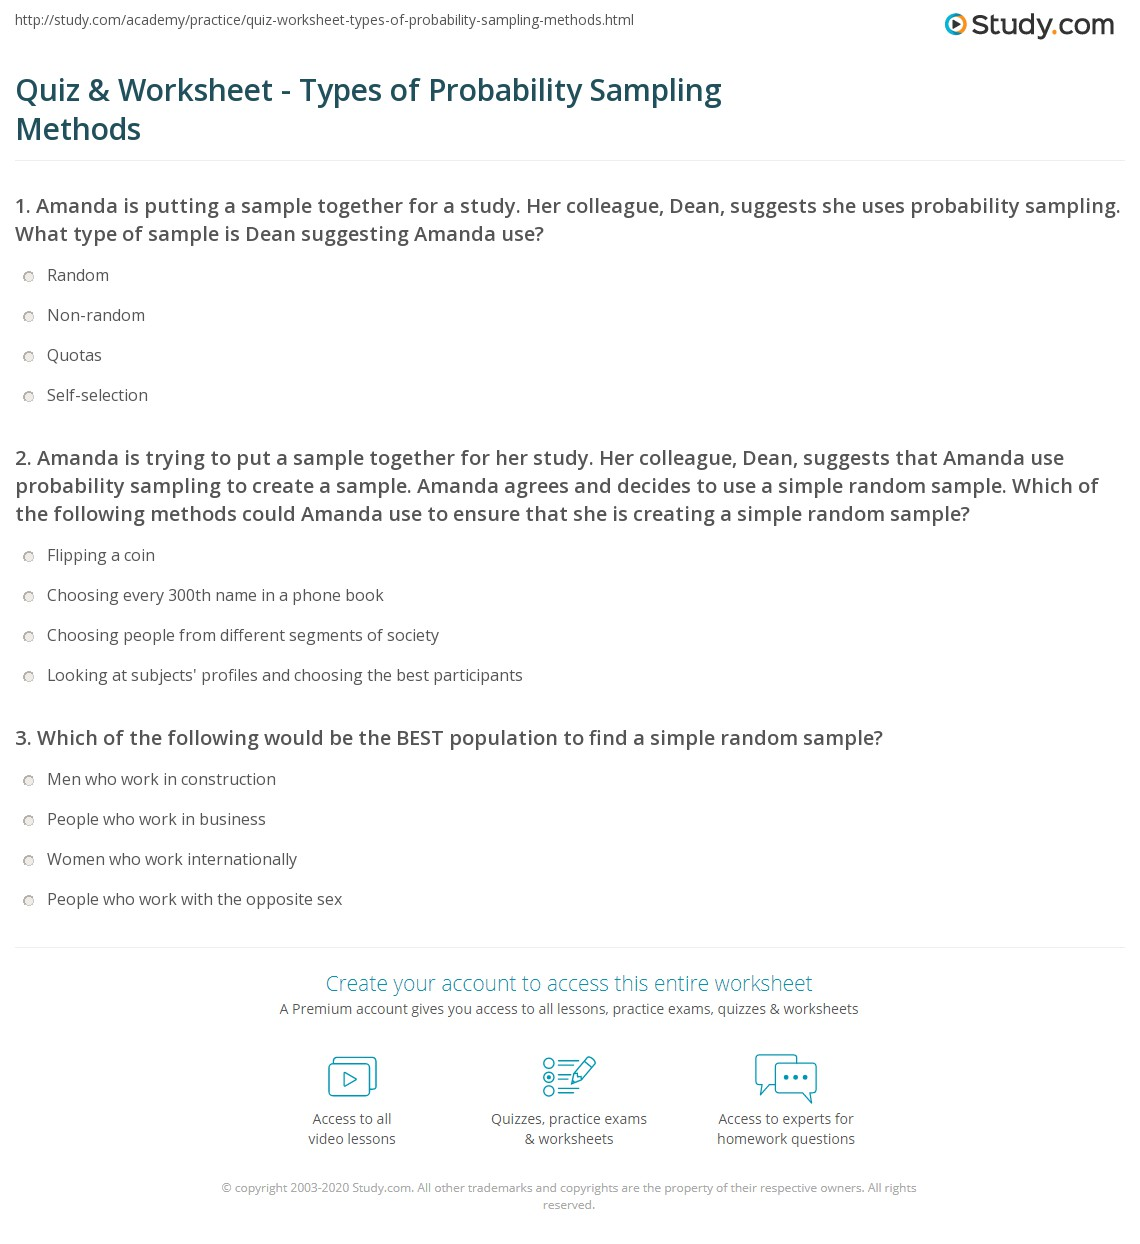 Quiz & Worksheet - Types of Probability Sampling Methods | Study.com